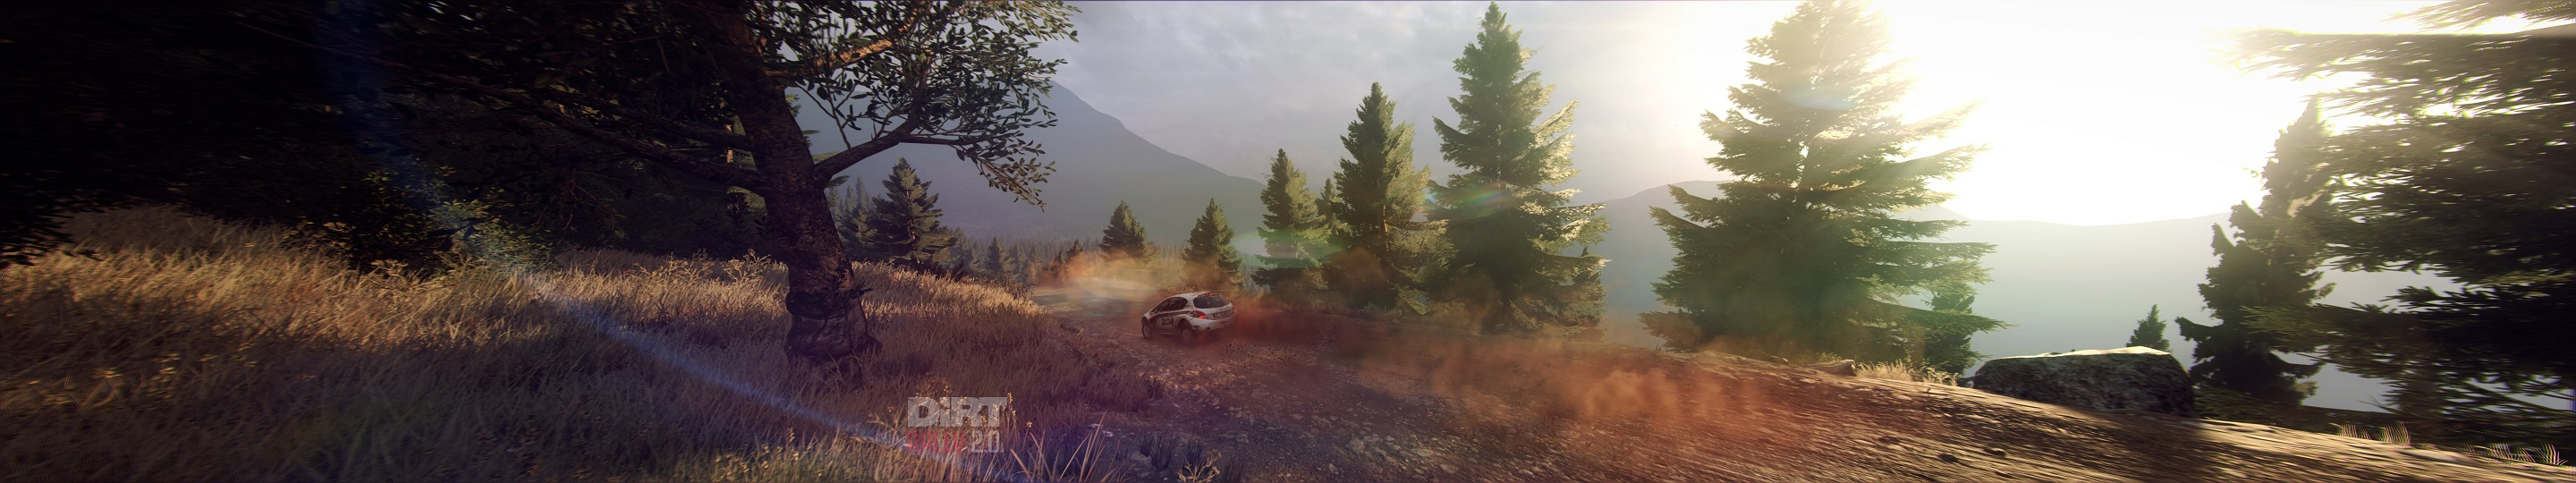 2 DIRT RALLY 2 GREECE with R5 PEUGEOT copy.jpg